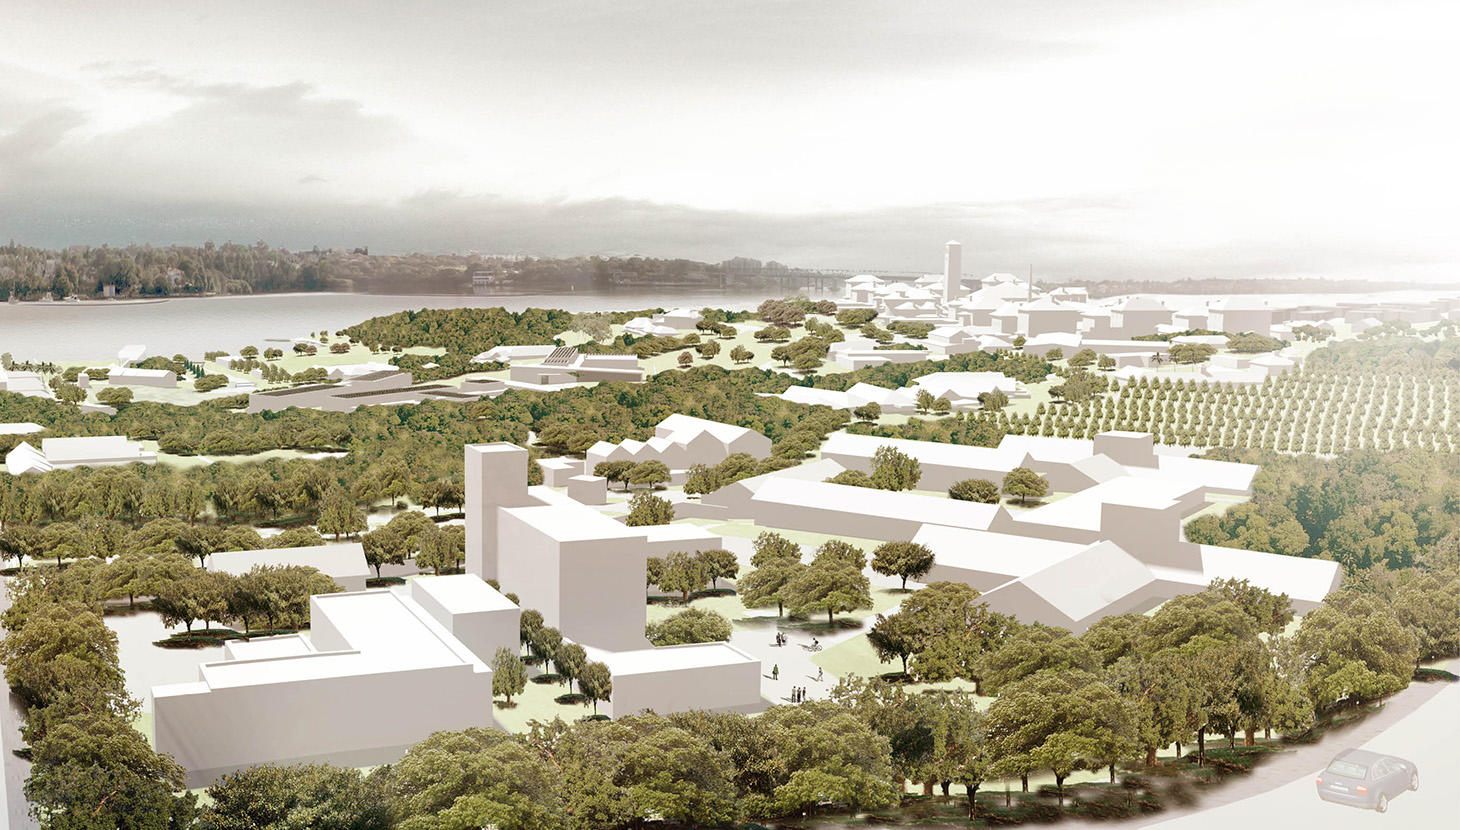 A Sydney Harbour project, Callan Park forms a major public space within Sydney's Green Grid and supports a variety of cultural institutions.